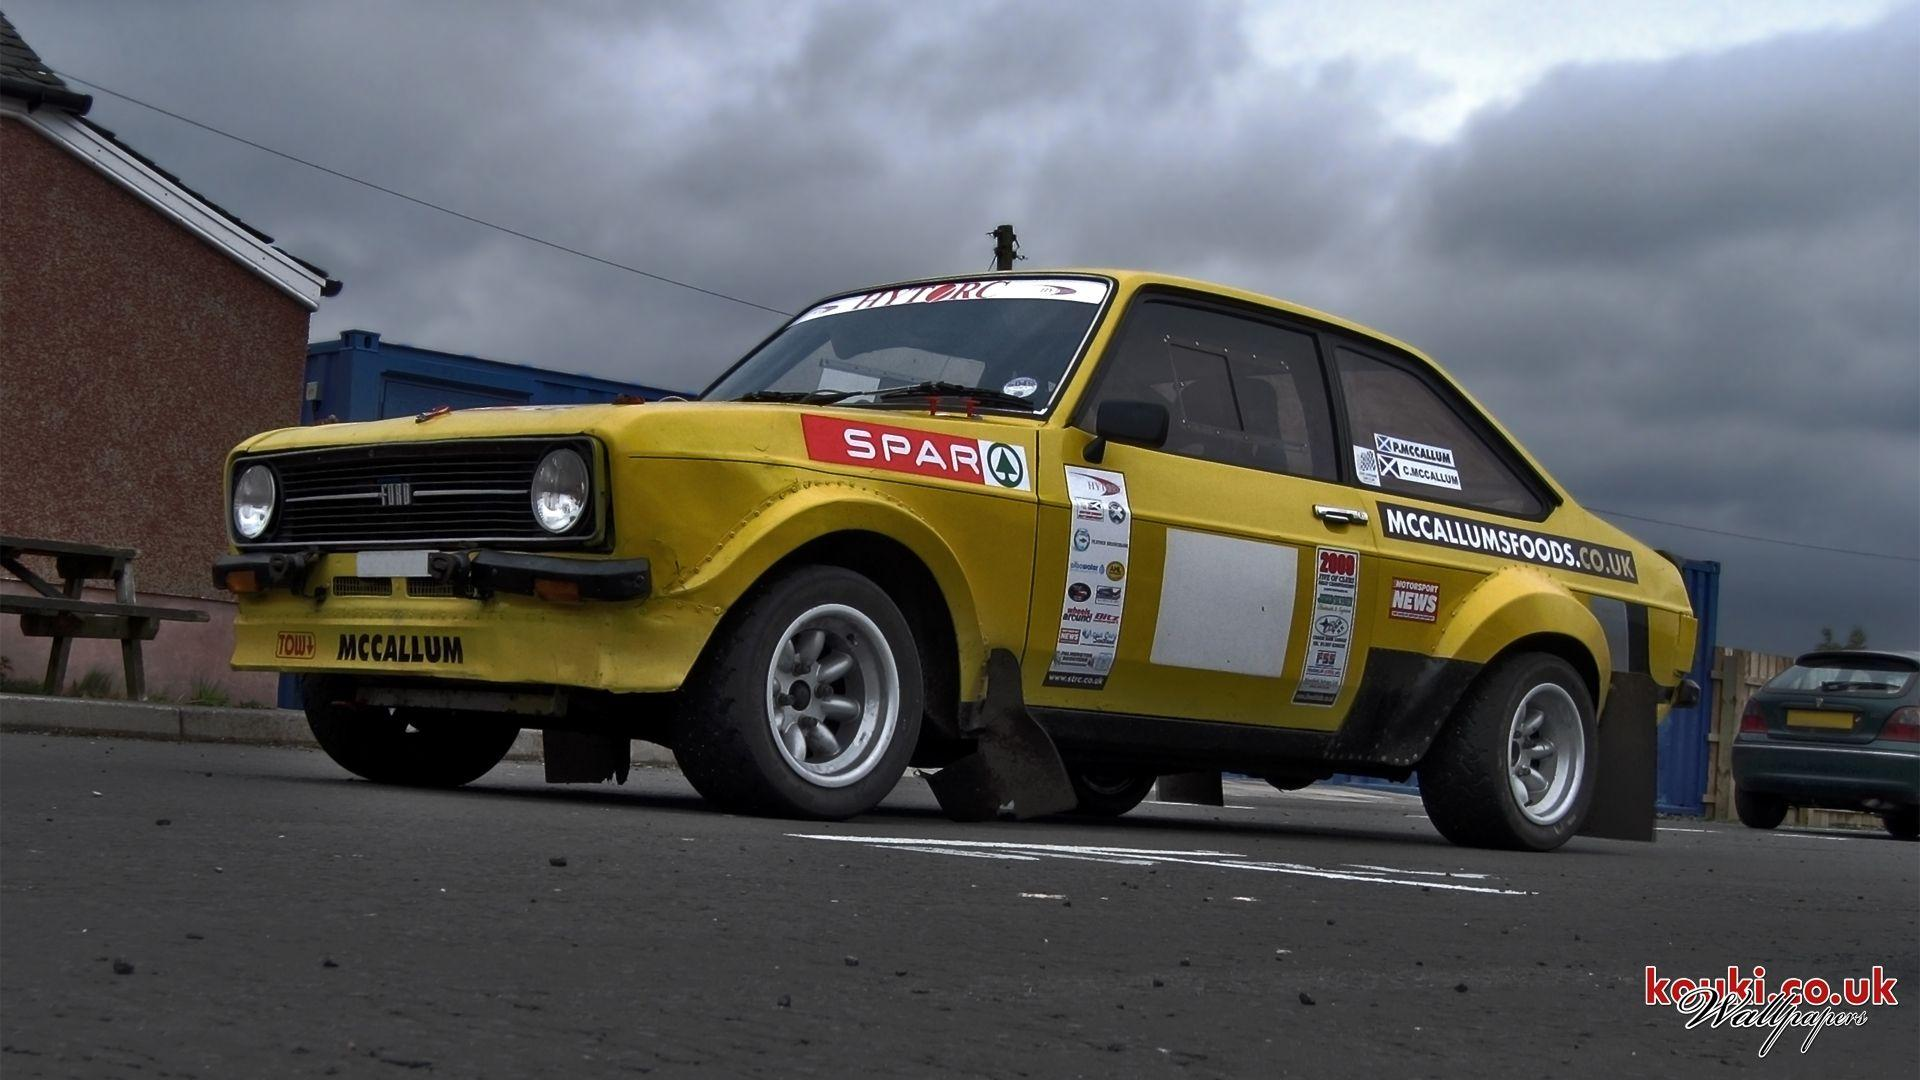 Wallpaper: MK2 Ford Escort at Kames Trackday